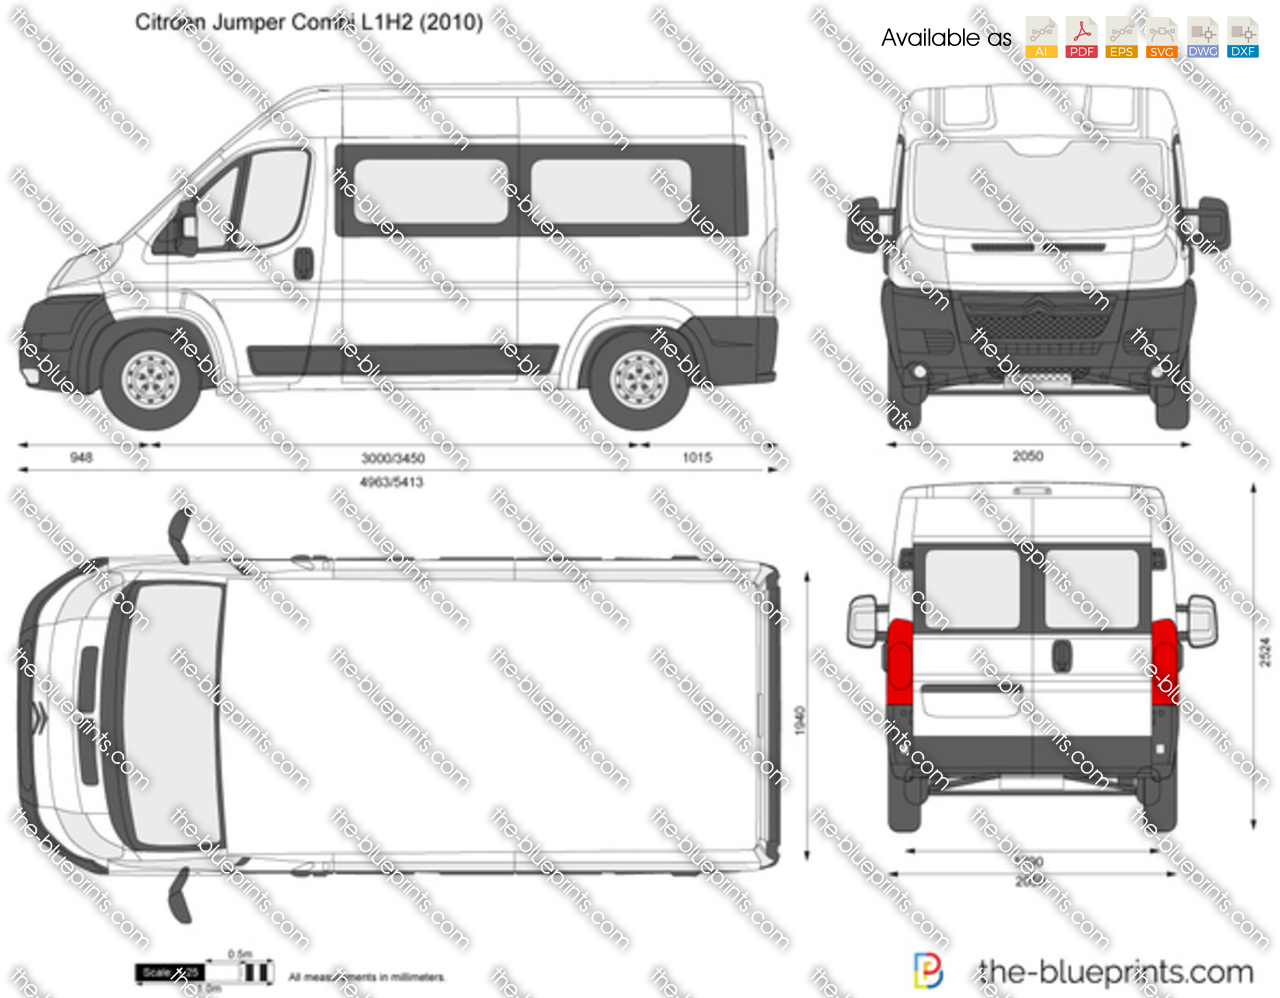 citroen jumper combi l1h2 vector drawing